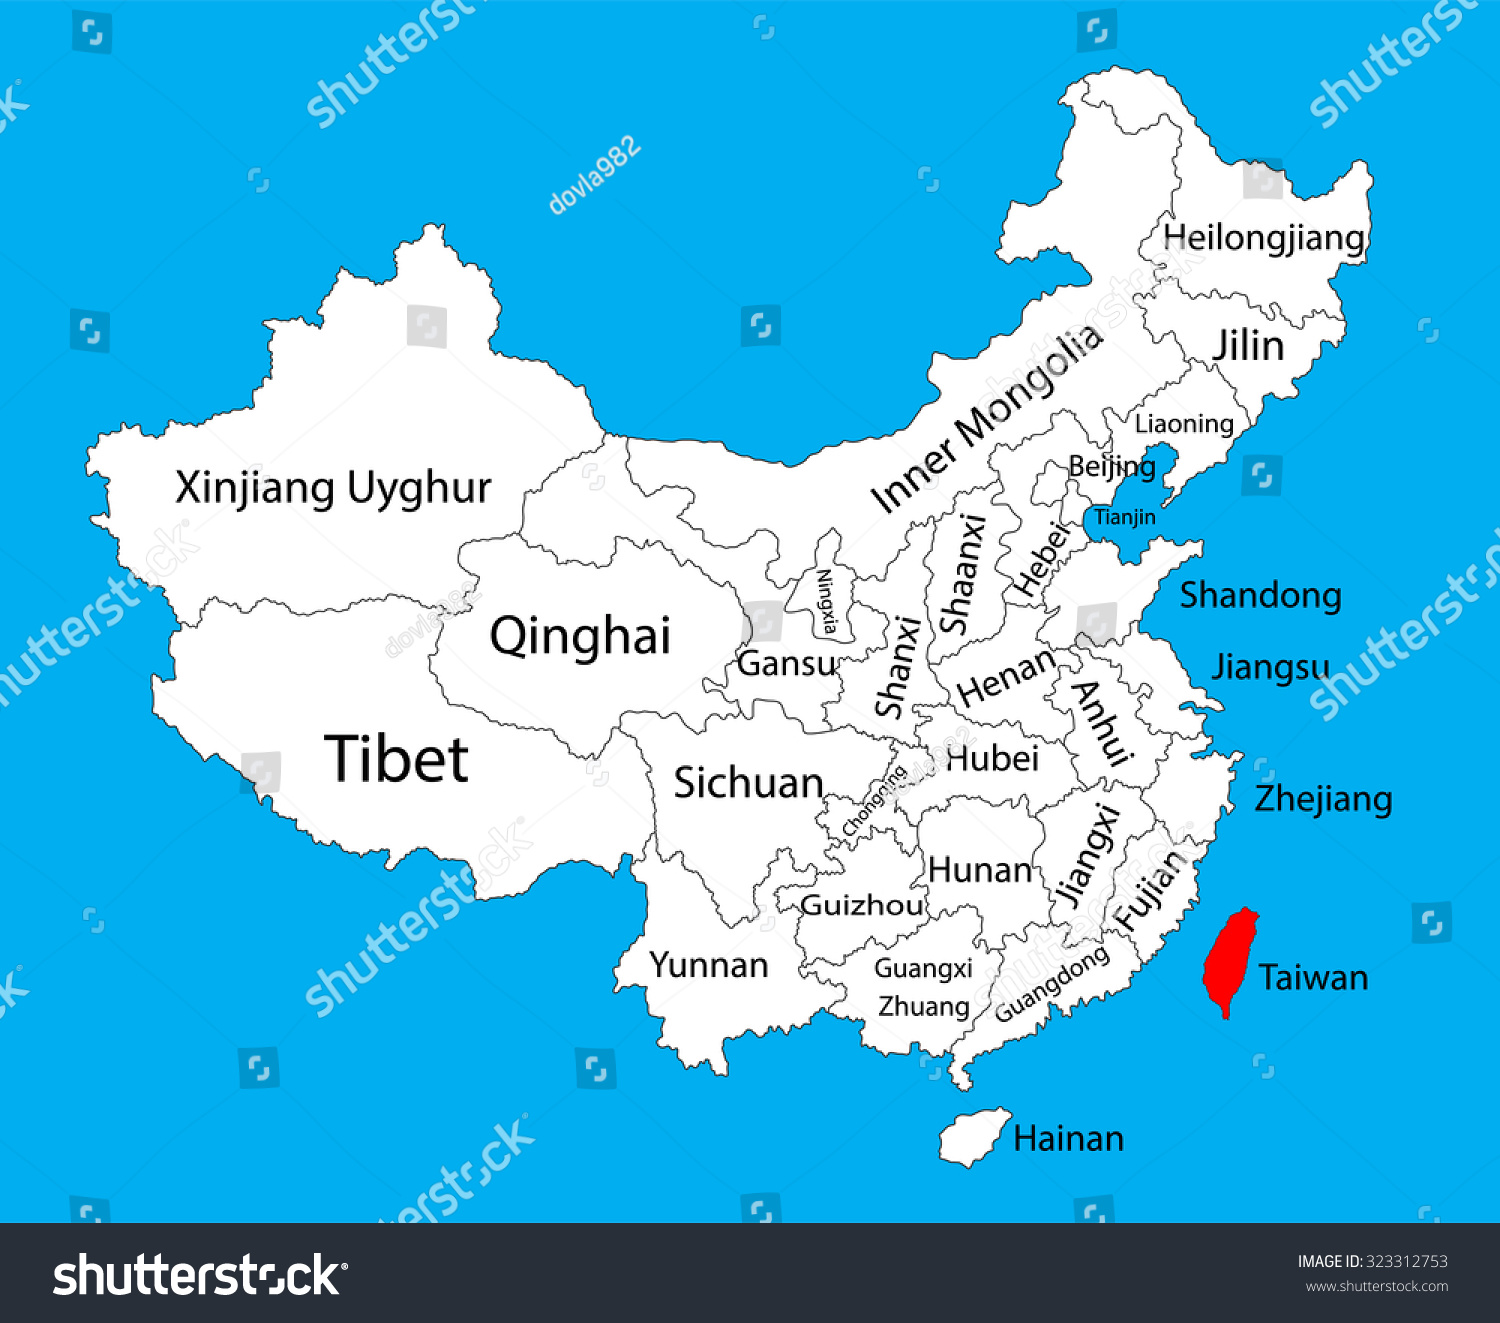 Taiwan province map china vector map stock vector 323312753 taiwan province map china vector map illustration isolated on background editable china map gumiabroncs Choice Image